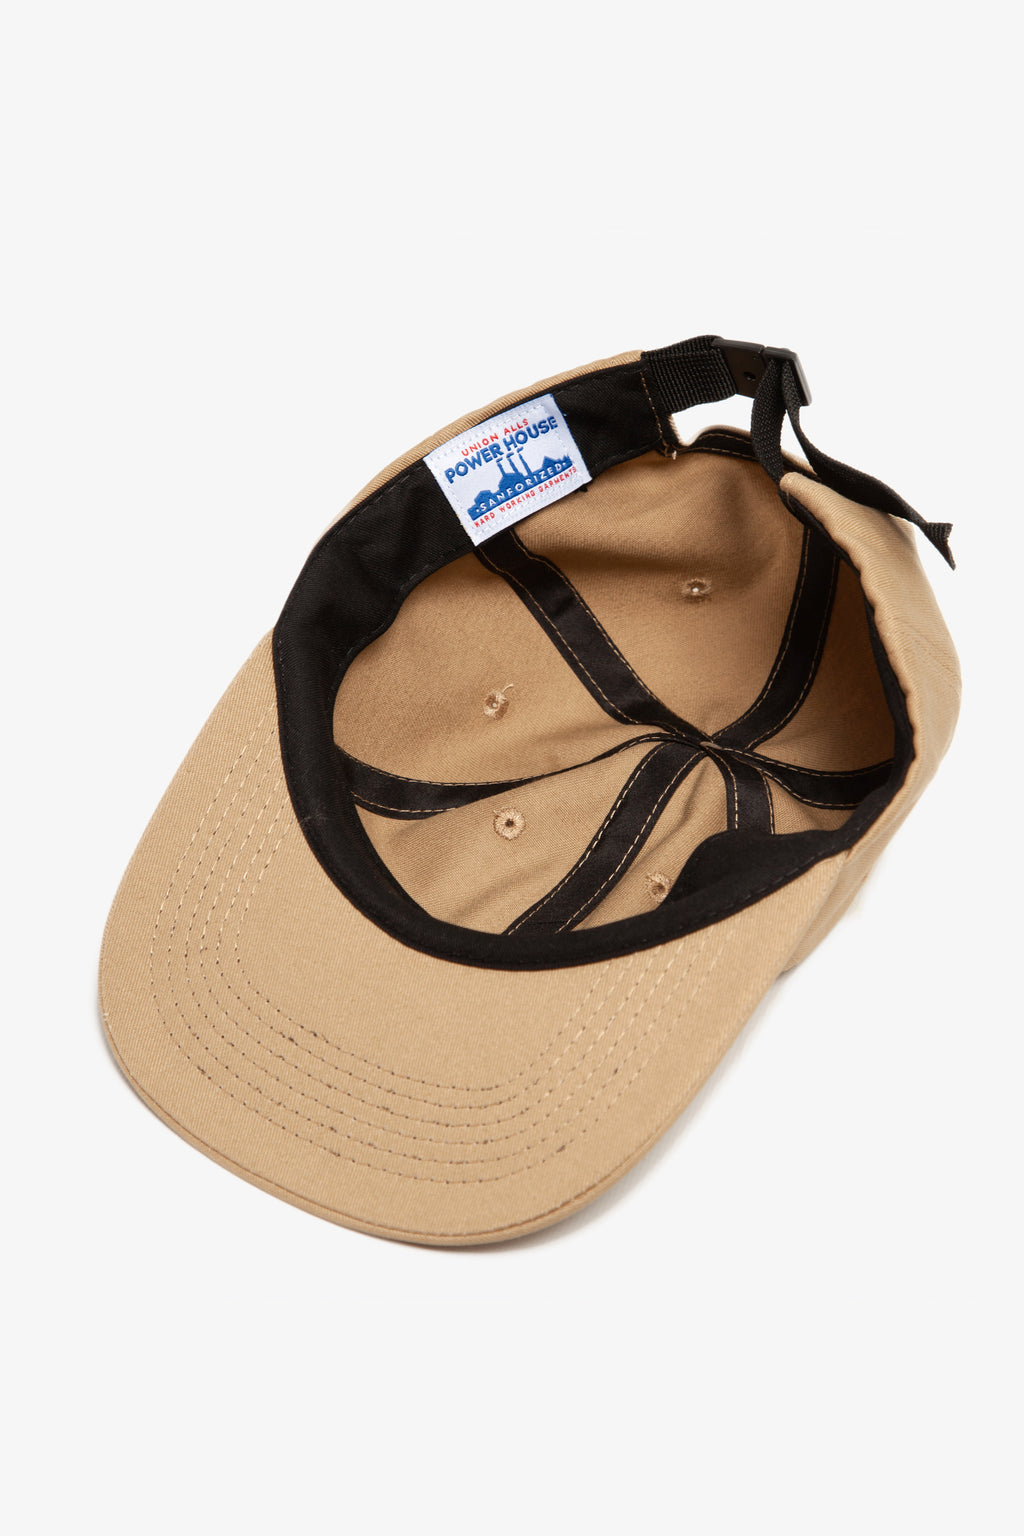 Power House - Perfect 6-Panel Cap - Tan